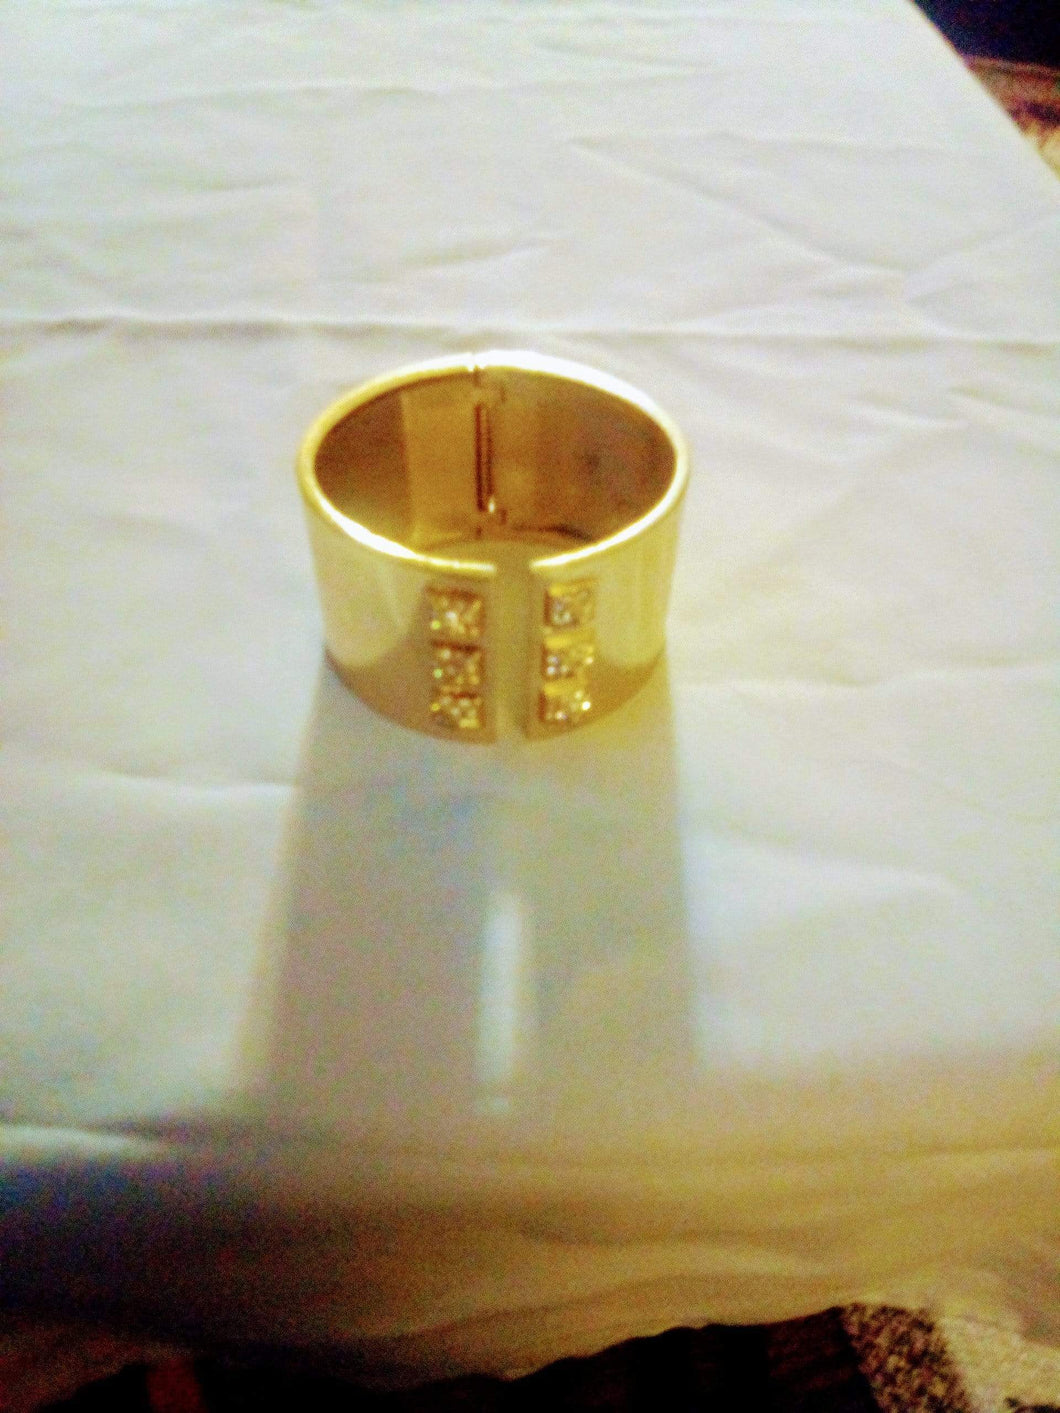 Victoria's Secret gold tone bracelet - B&P'sringsnthings